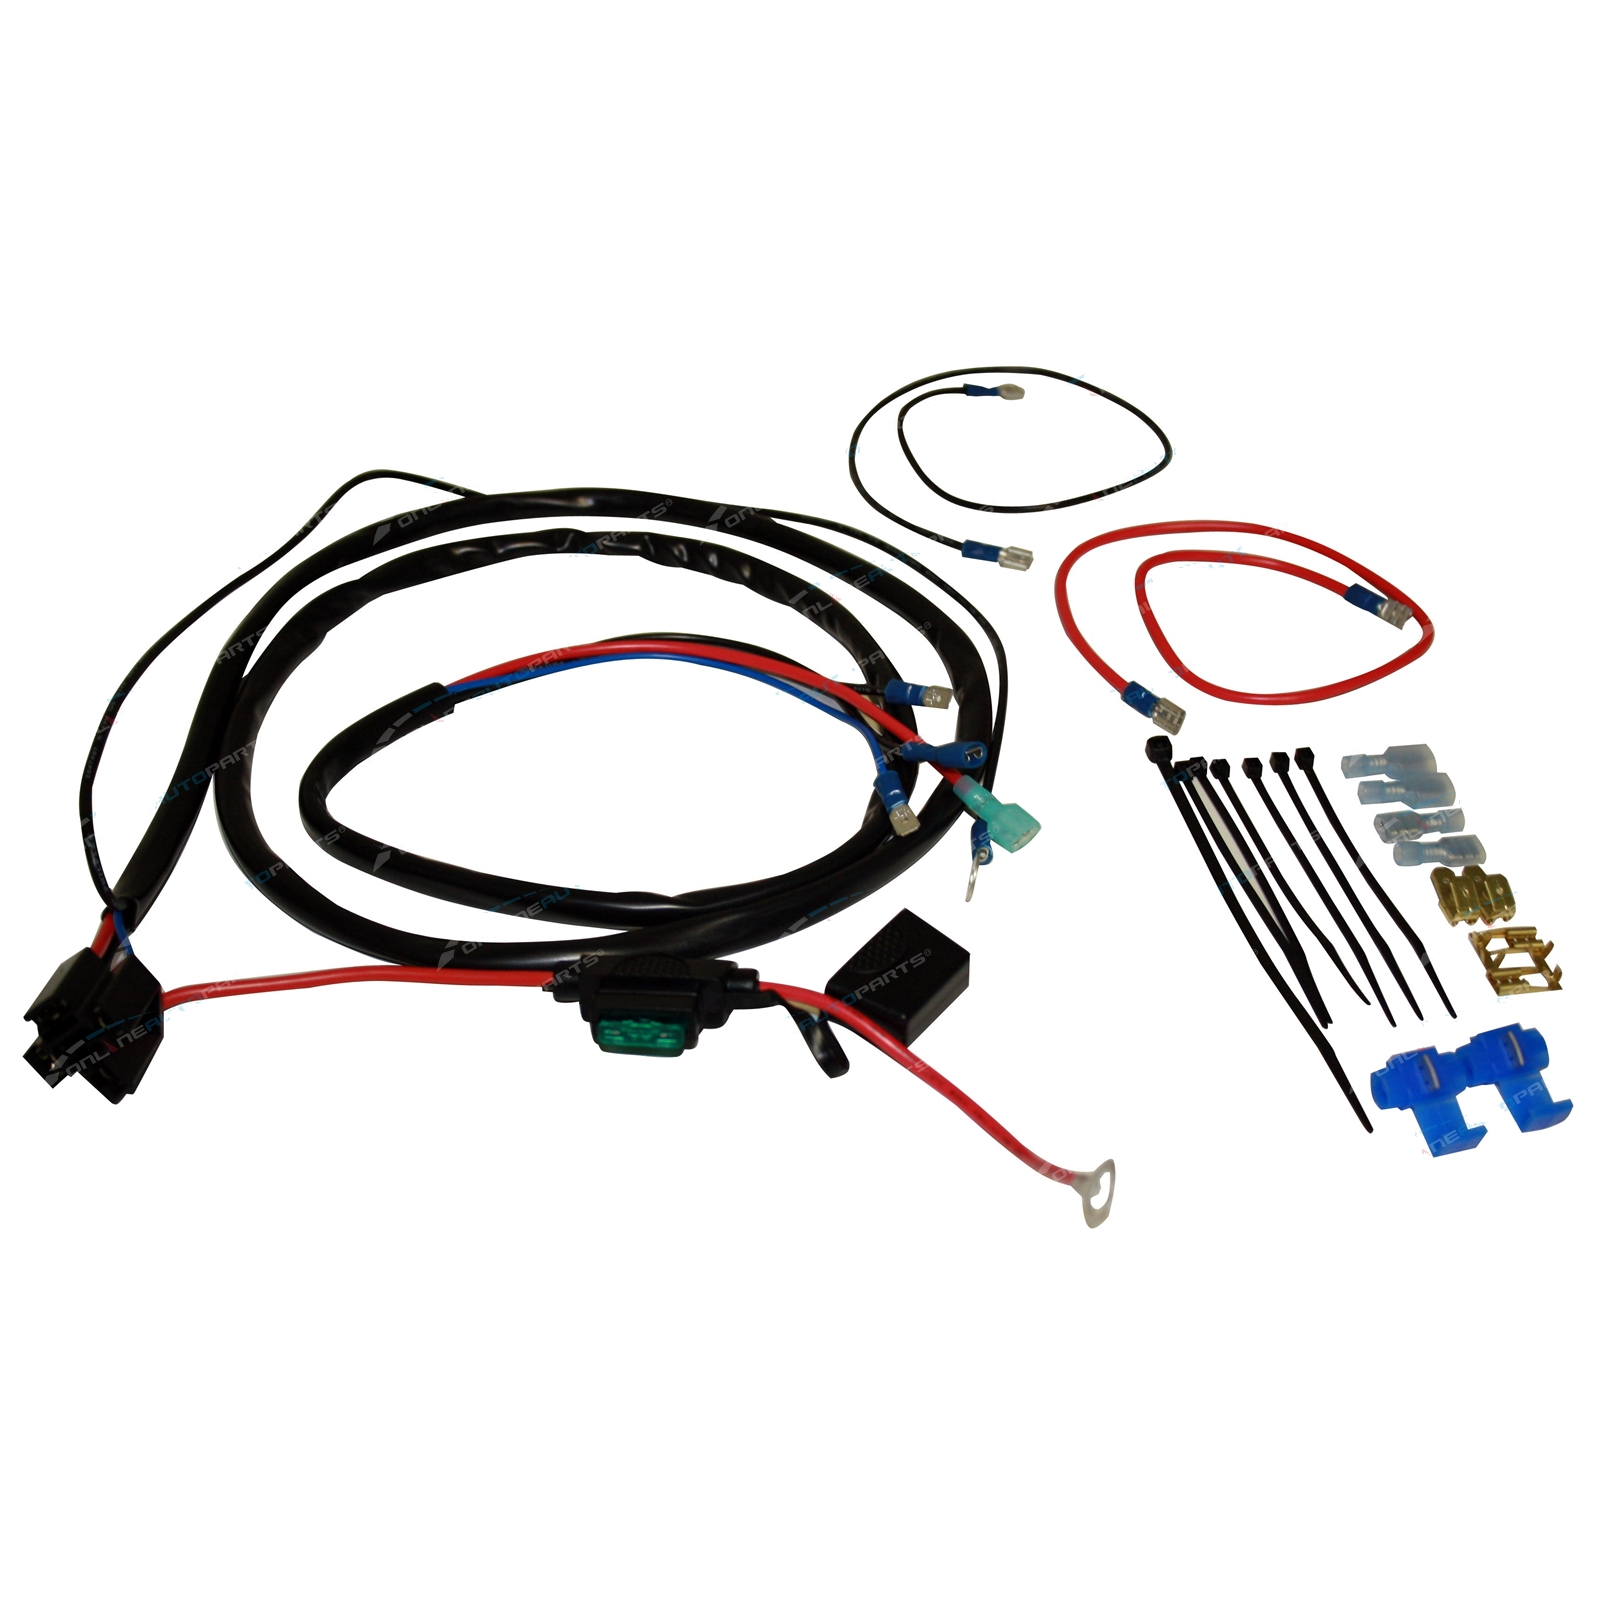 74f3473a1e804ea3ac2e9e76f3681b40 136db high power stebel magnum twin electric horn wiring harnes harness master wiring systems pty ltd at gsmportal.co